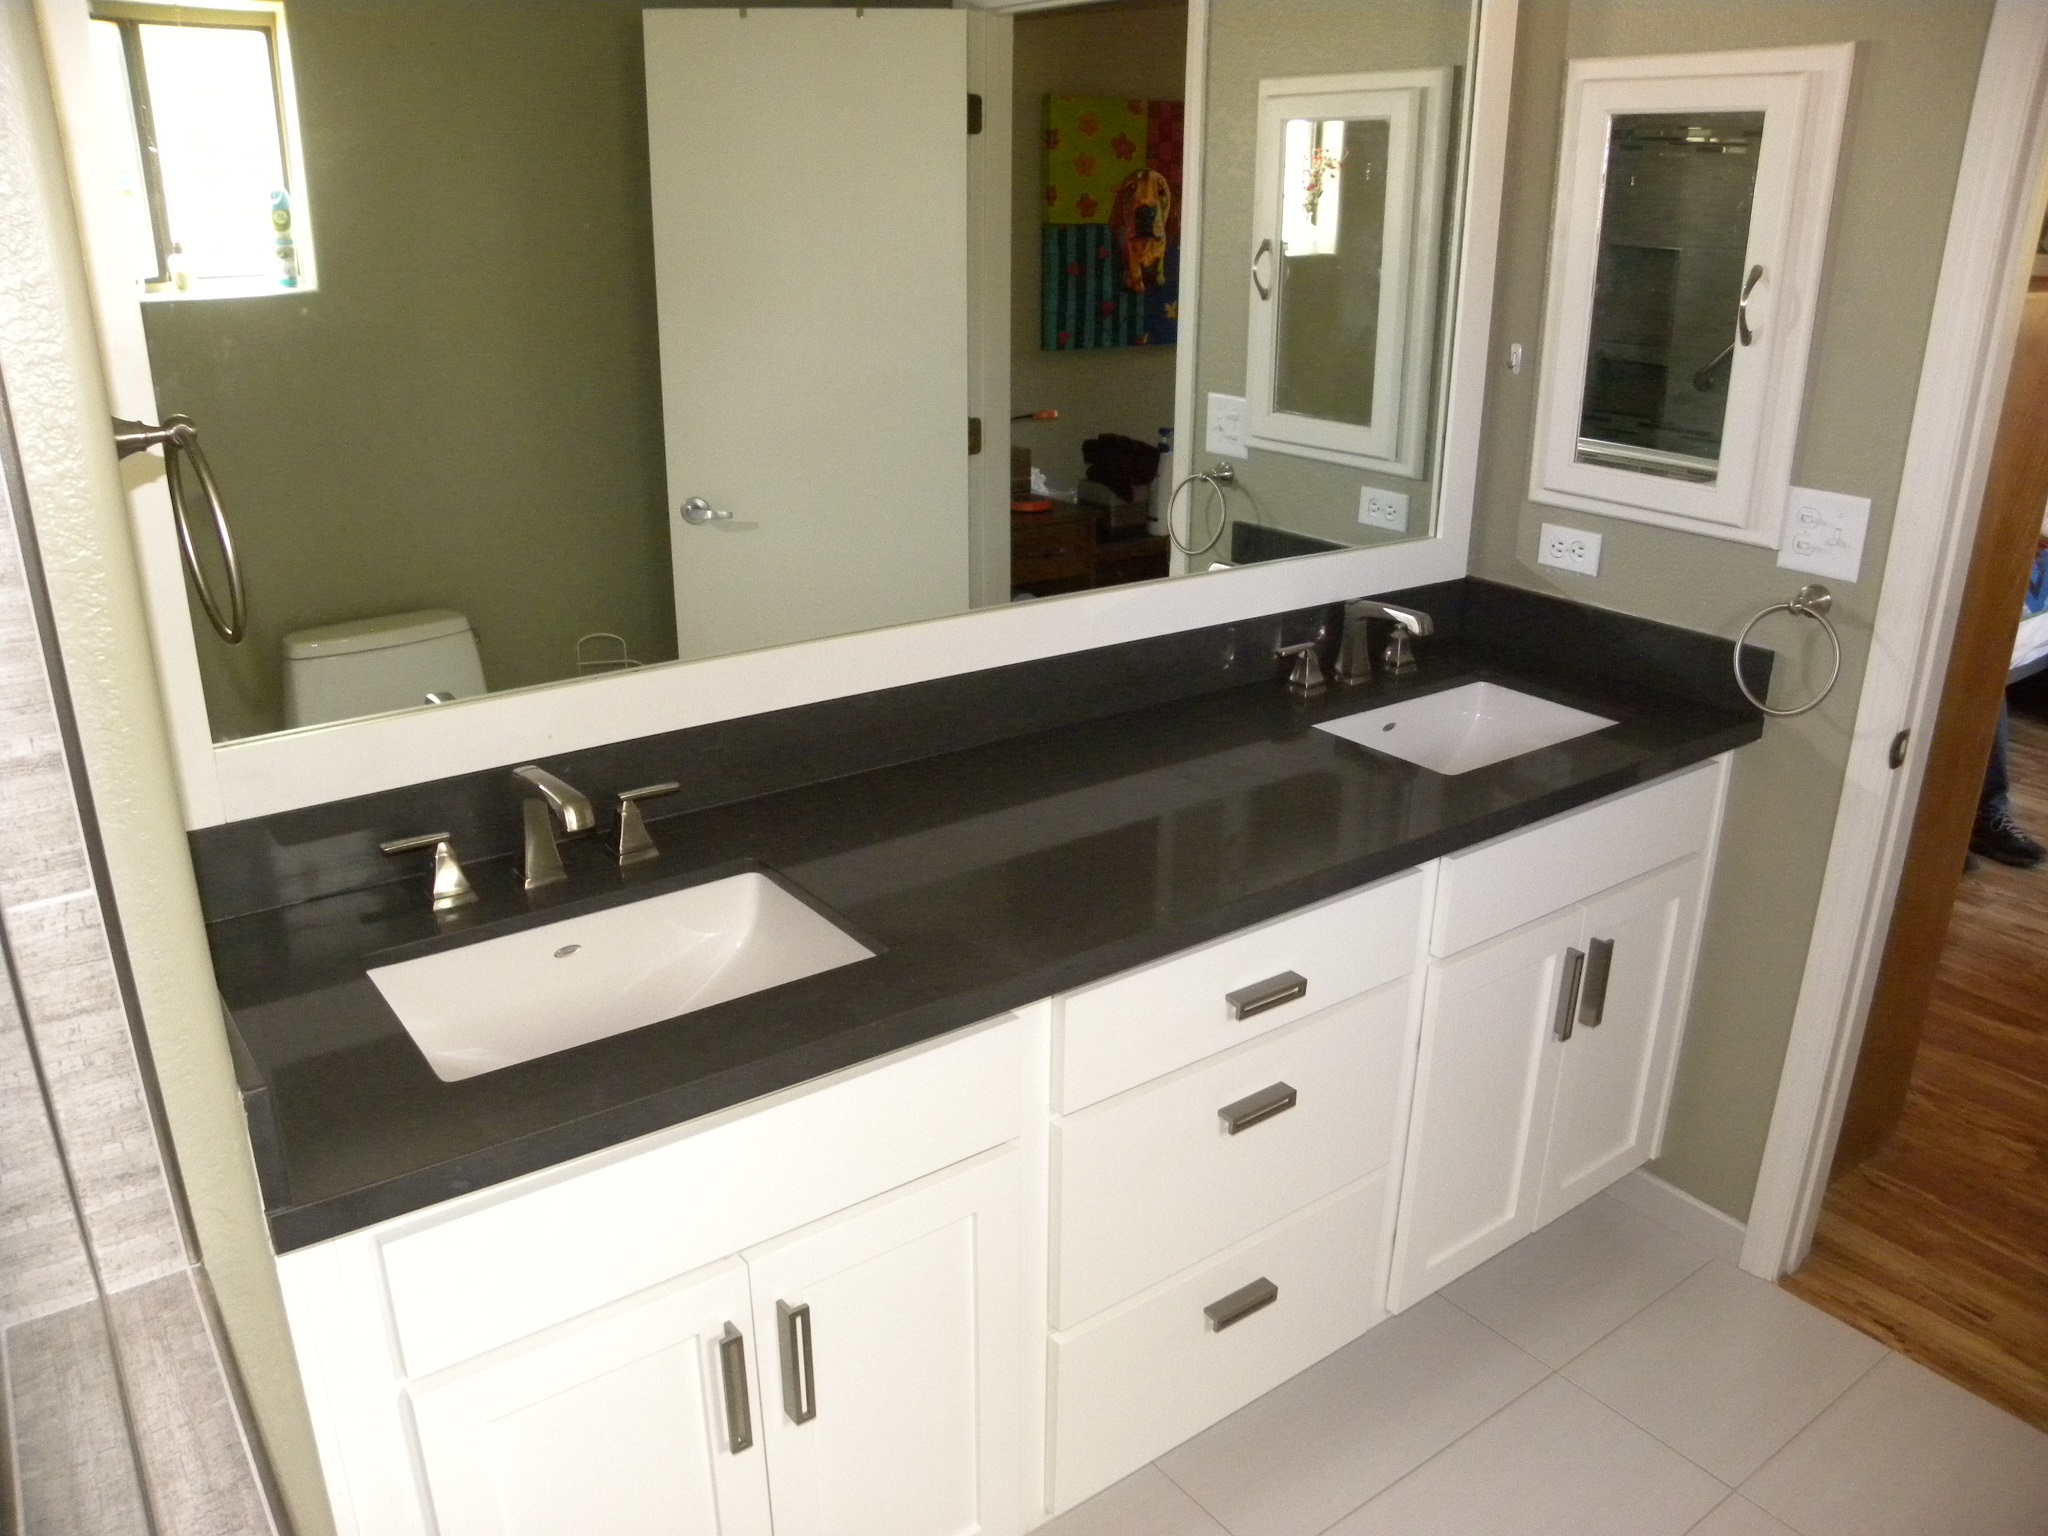 After photo of a custom designed bathroom with black countertops and white wooden cabinets in a residential bathroom.